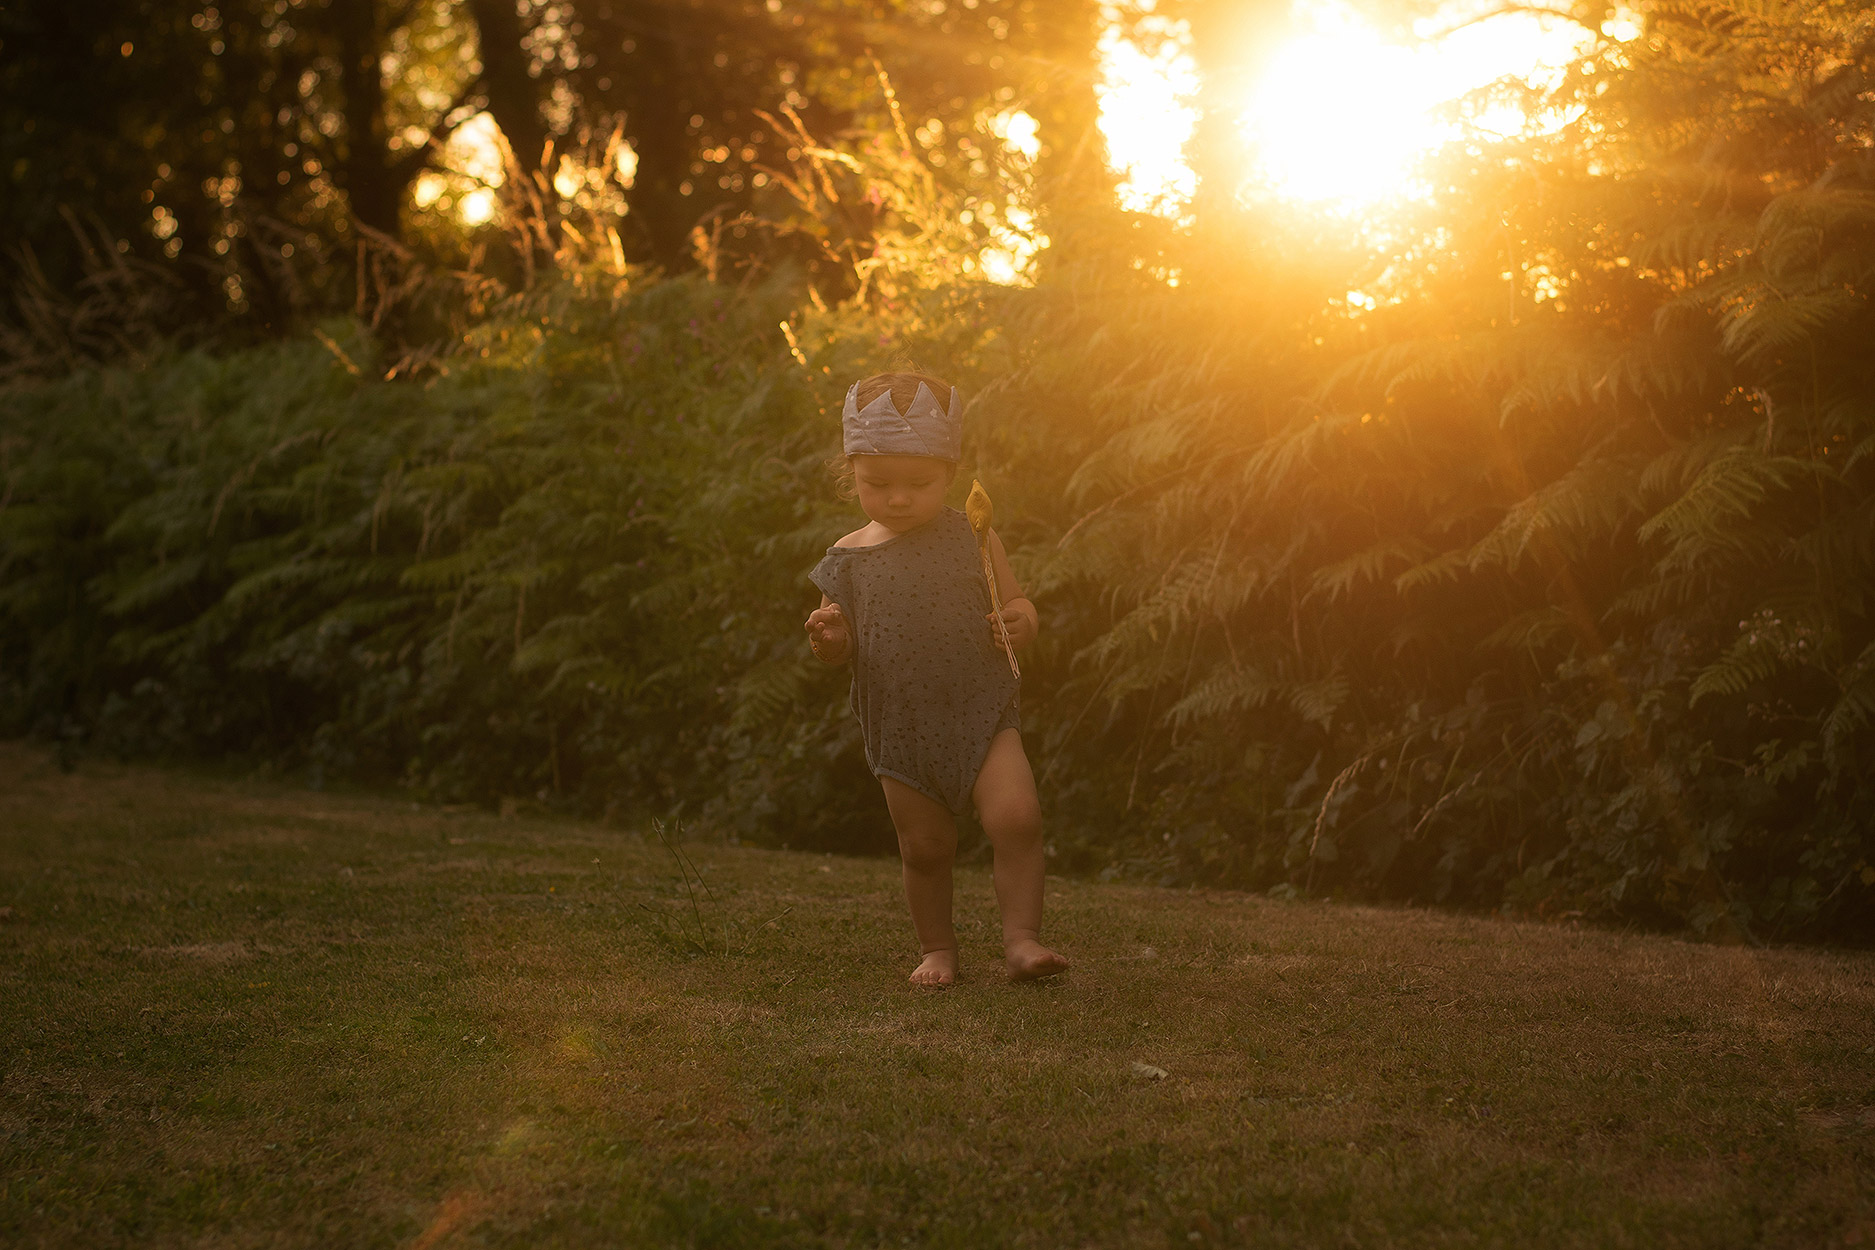 Celebrating the second birthday of a toddler with a golden hour sunset shoot wearing Maed for Mini spotted vest, fabric crown and wand in South Wales